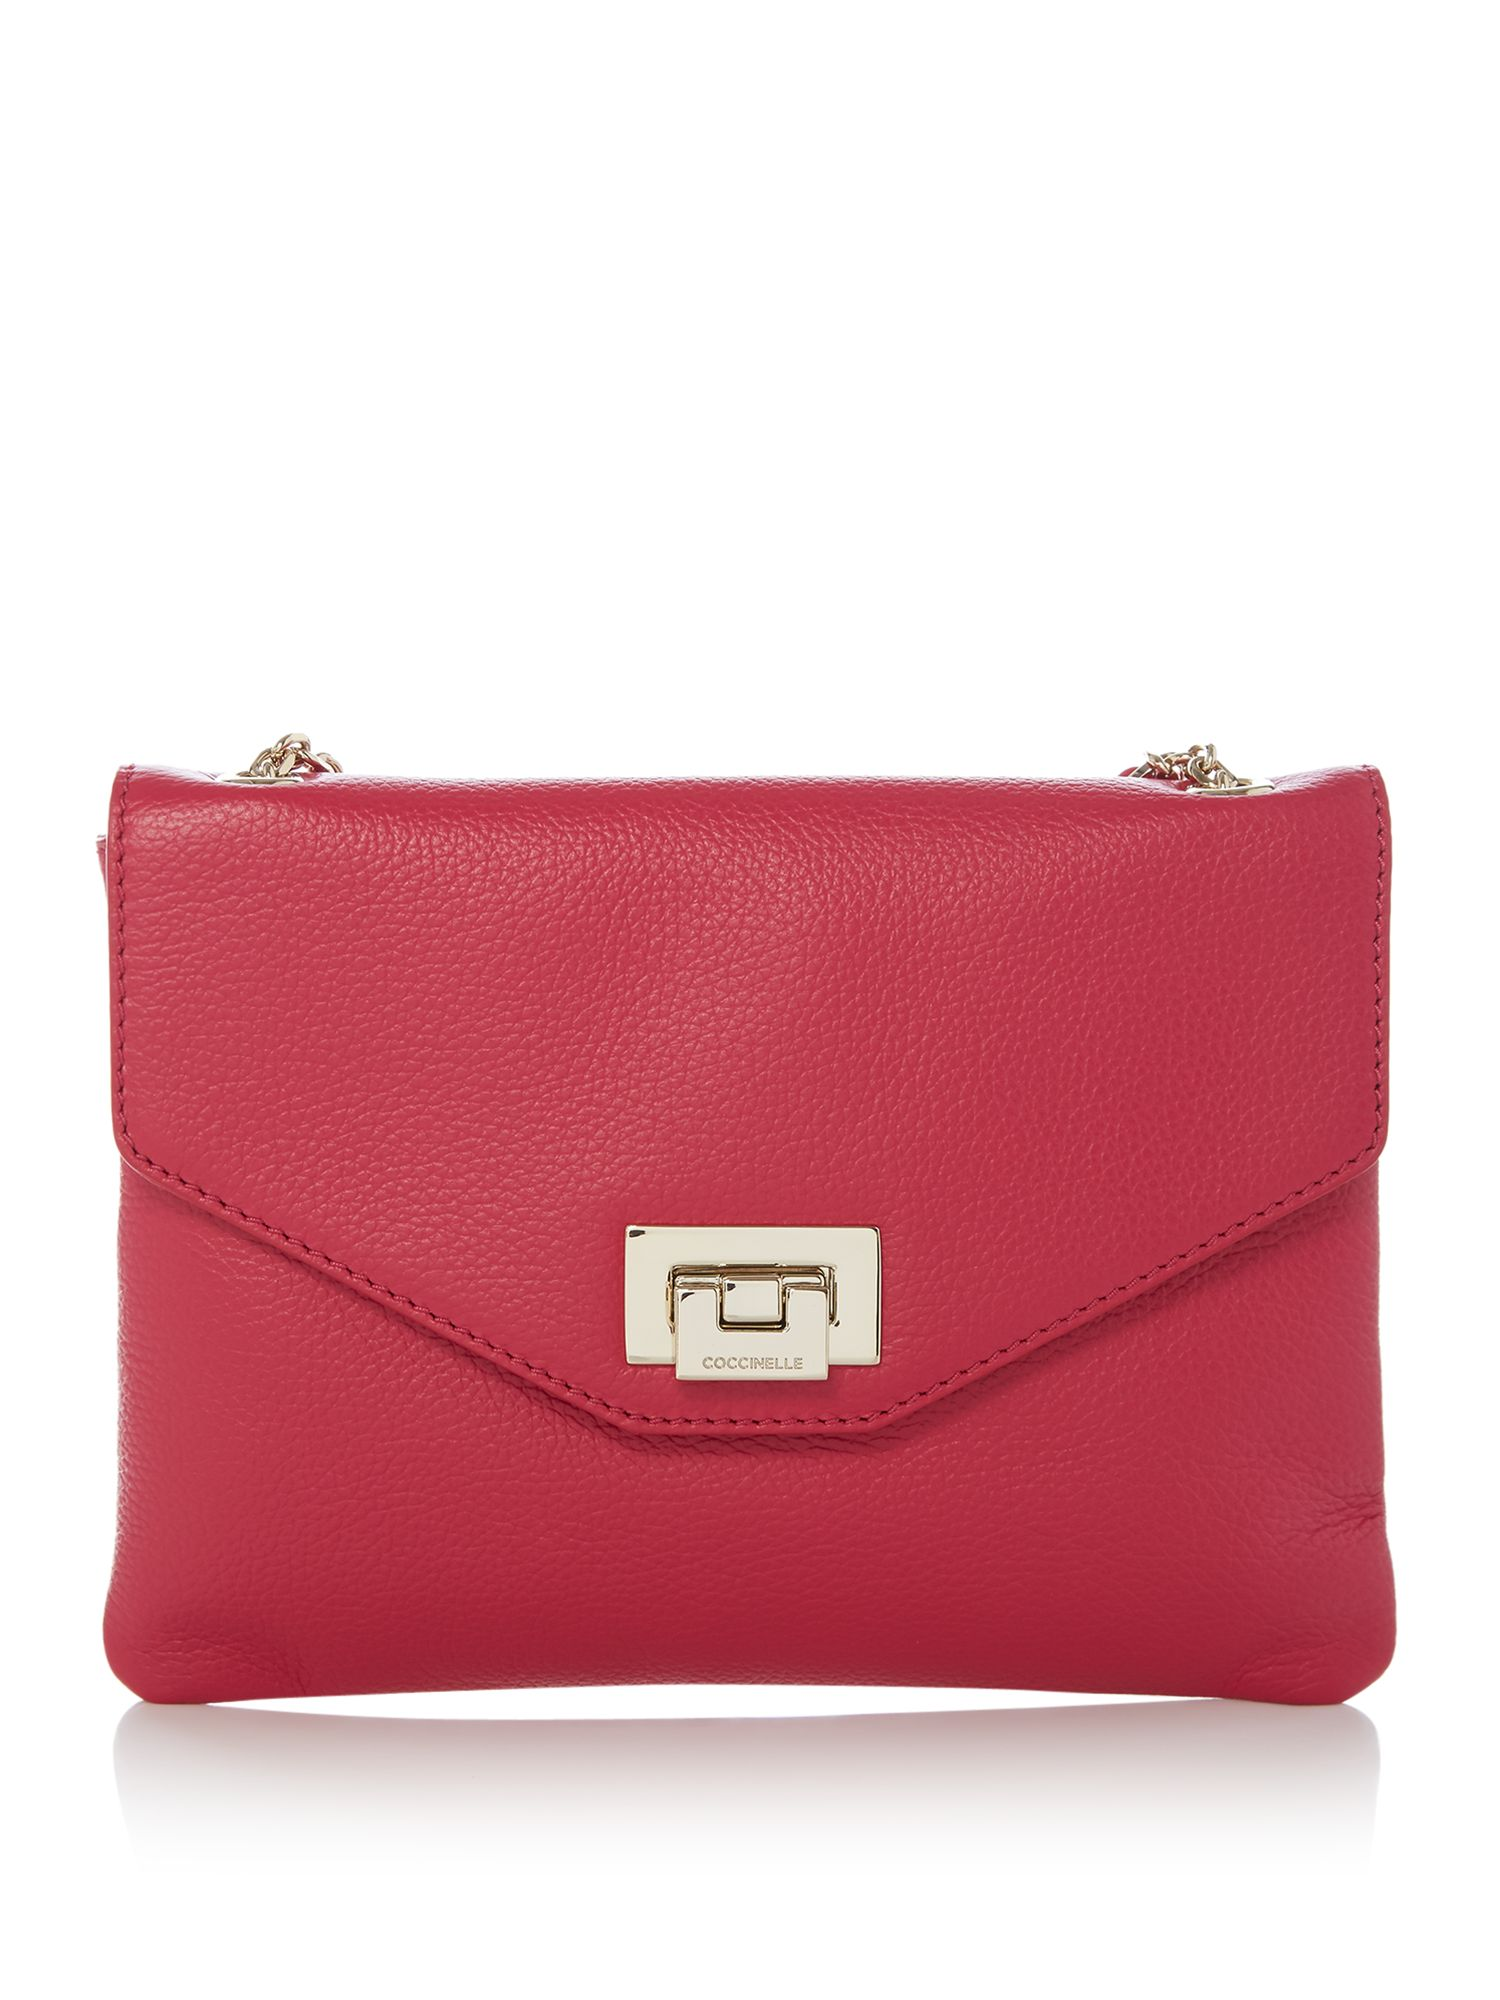 Coccinelle Florie clutch with chain strap, Dark Pink